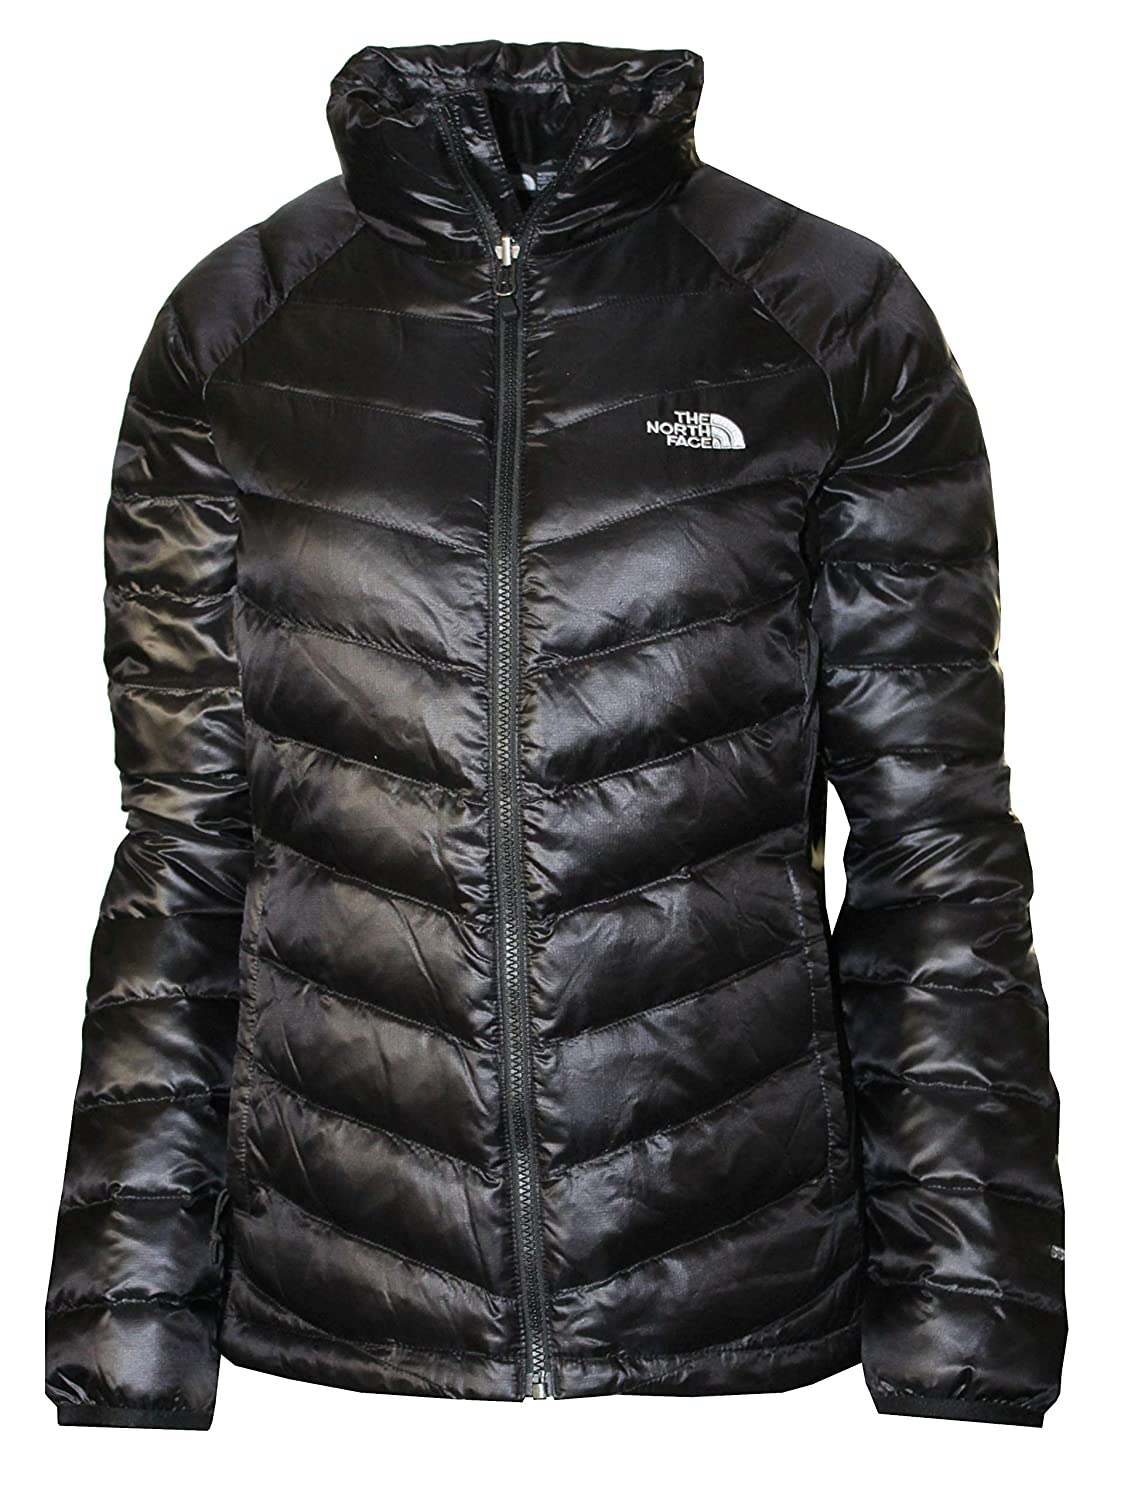 2c4793fae0 Amazon.com  The North Face Flare Women s Down 550 RTO Ski Jacket Puffer   Sports   Outdoors